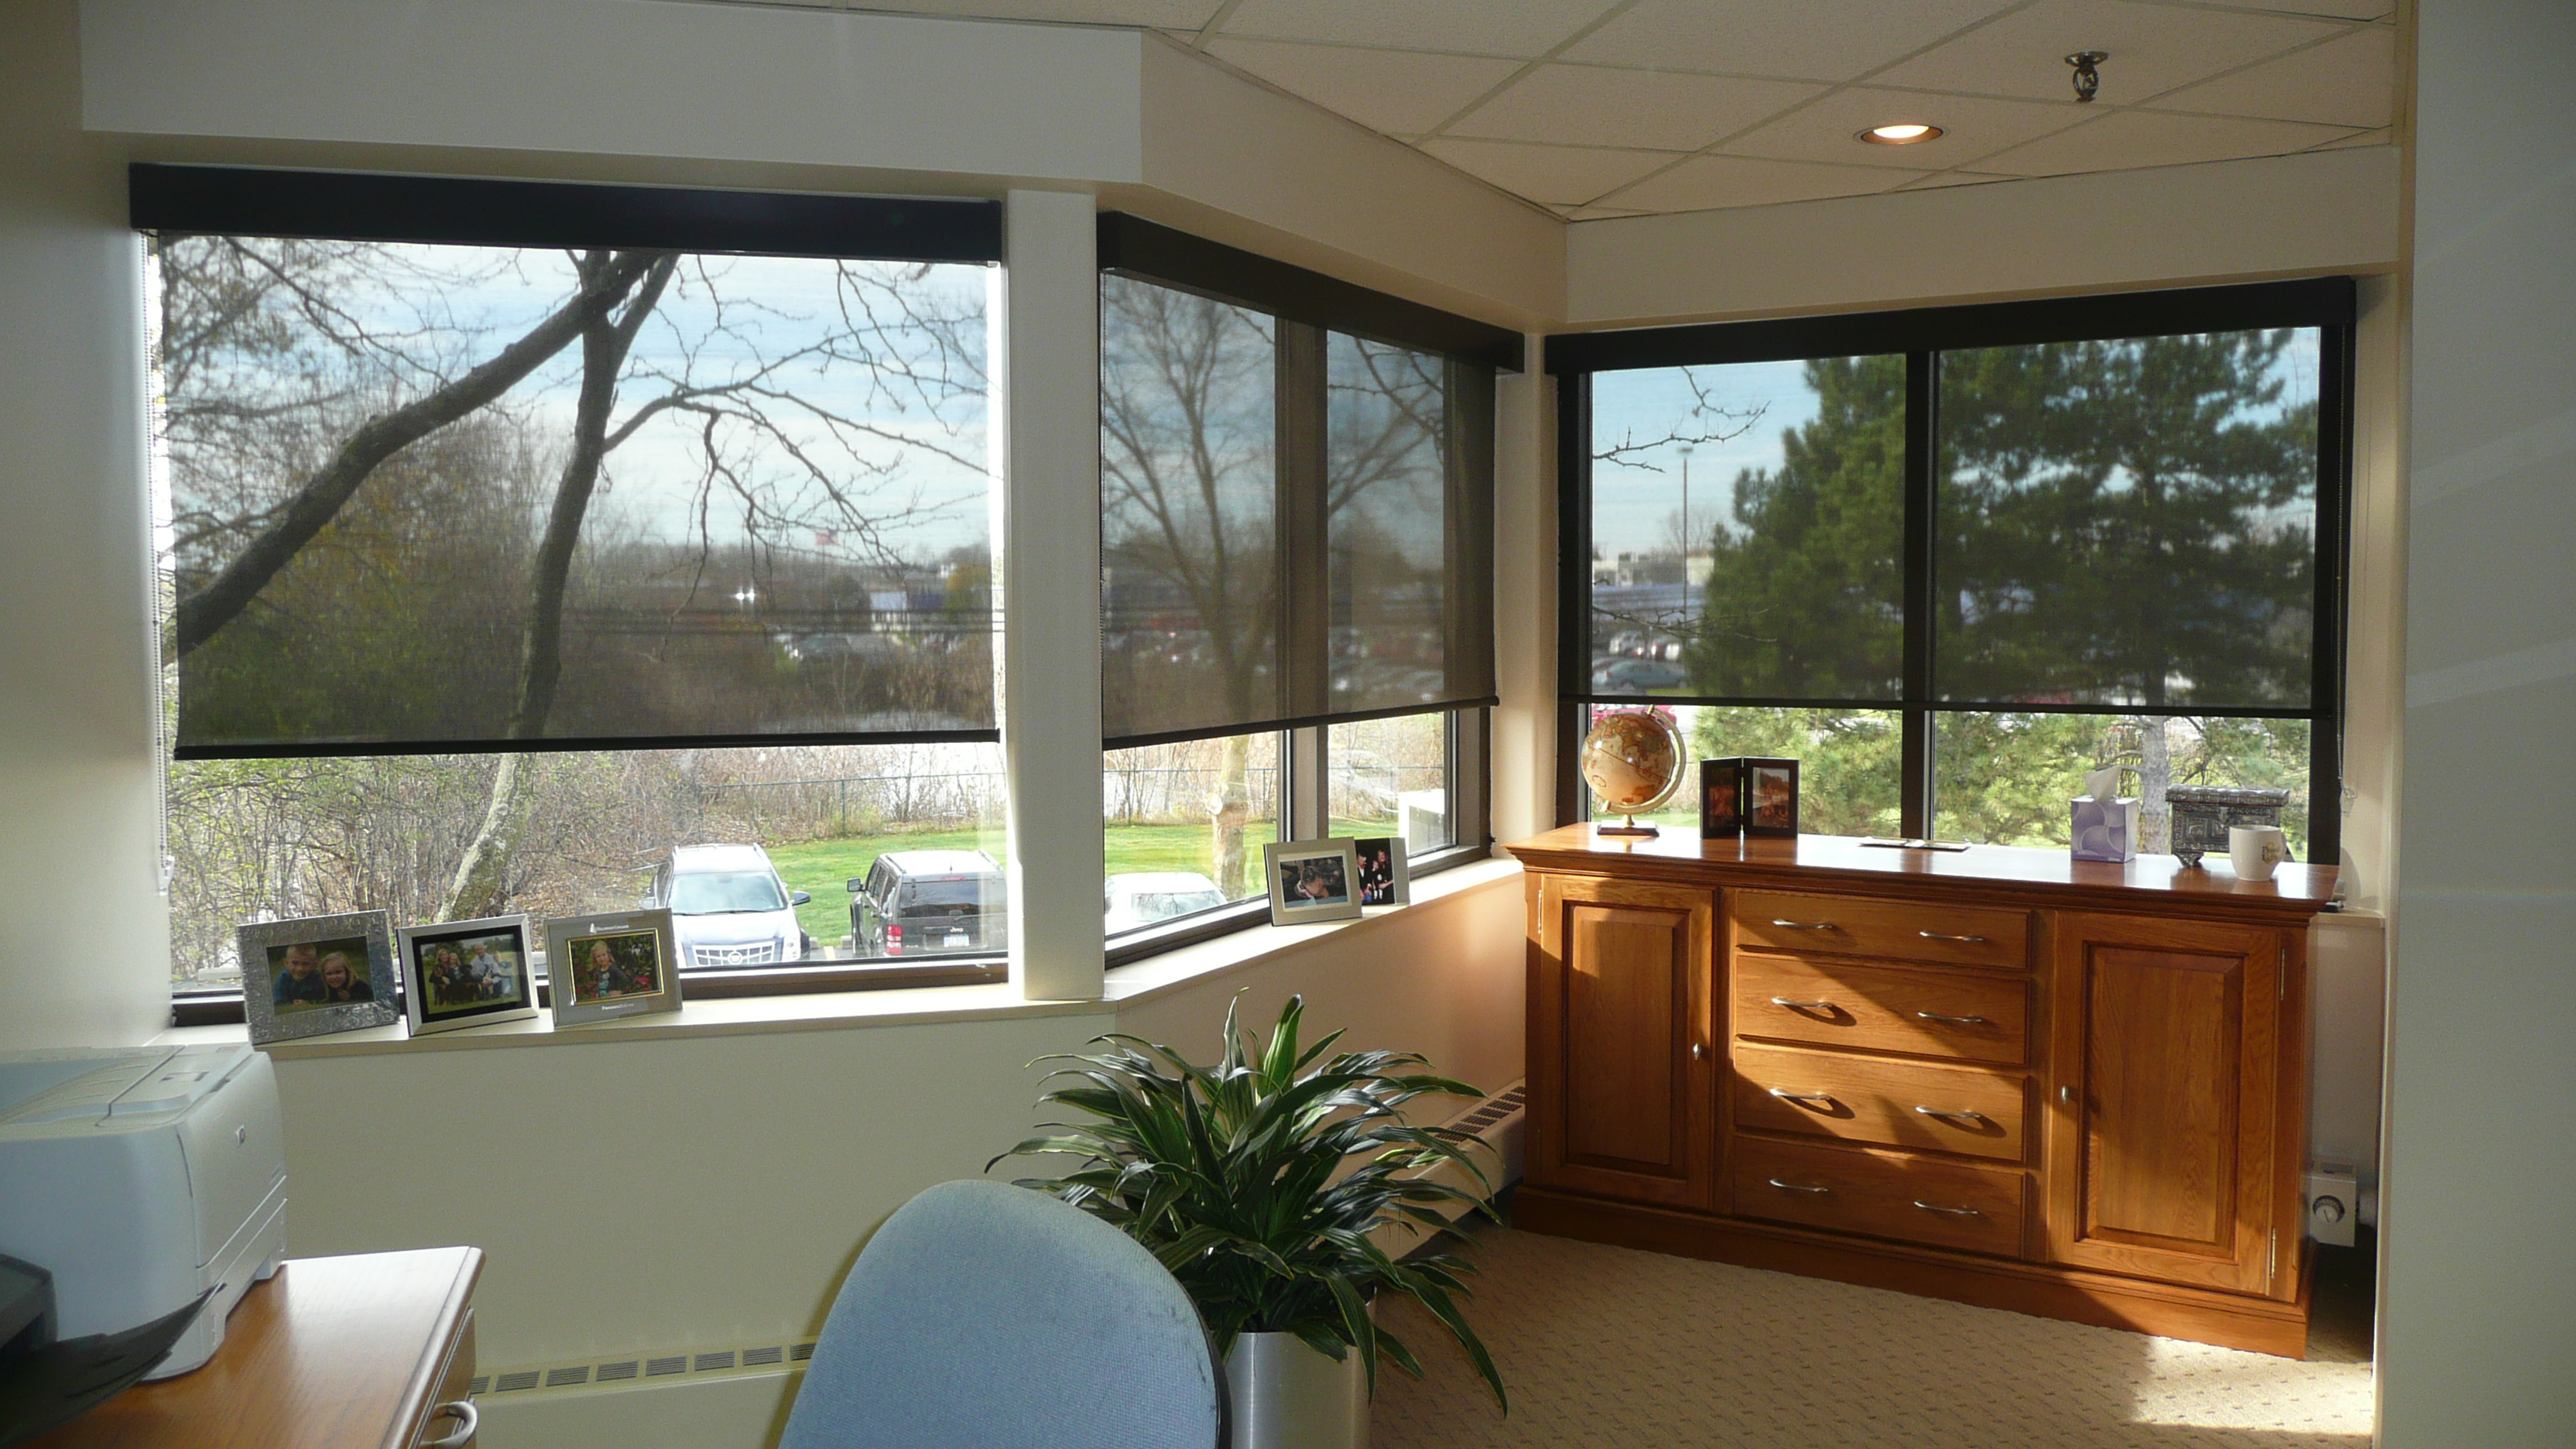 Rolling Solar Shades window shades  Bay Screens  Shades